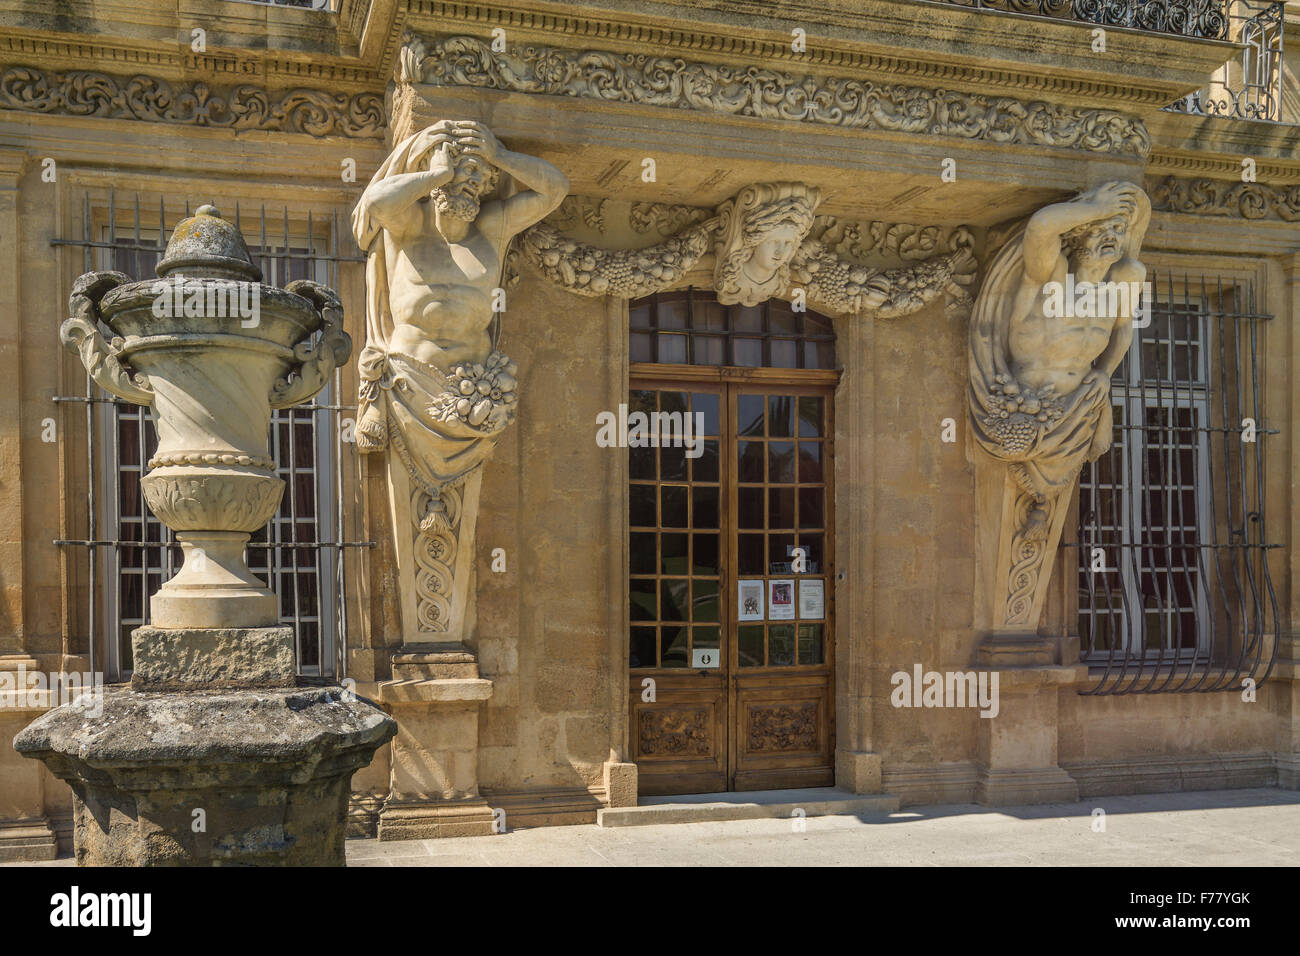 Atlantes, Pavillon Vendome, Aix en Provence, France - Stock Image